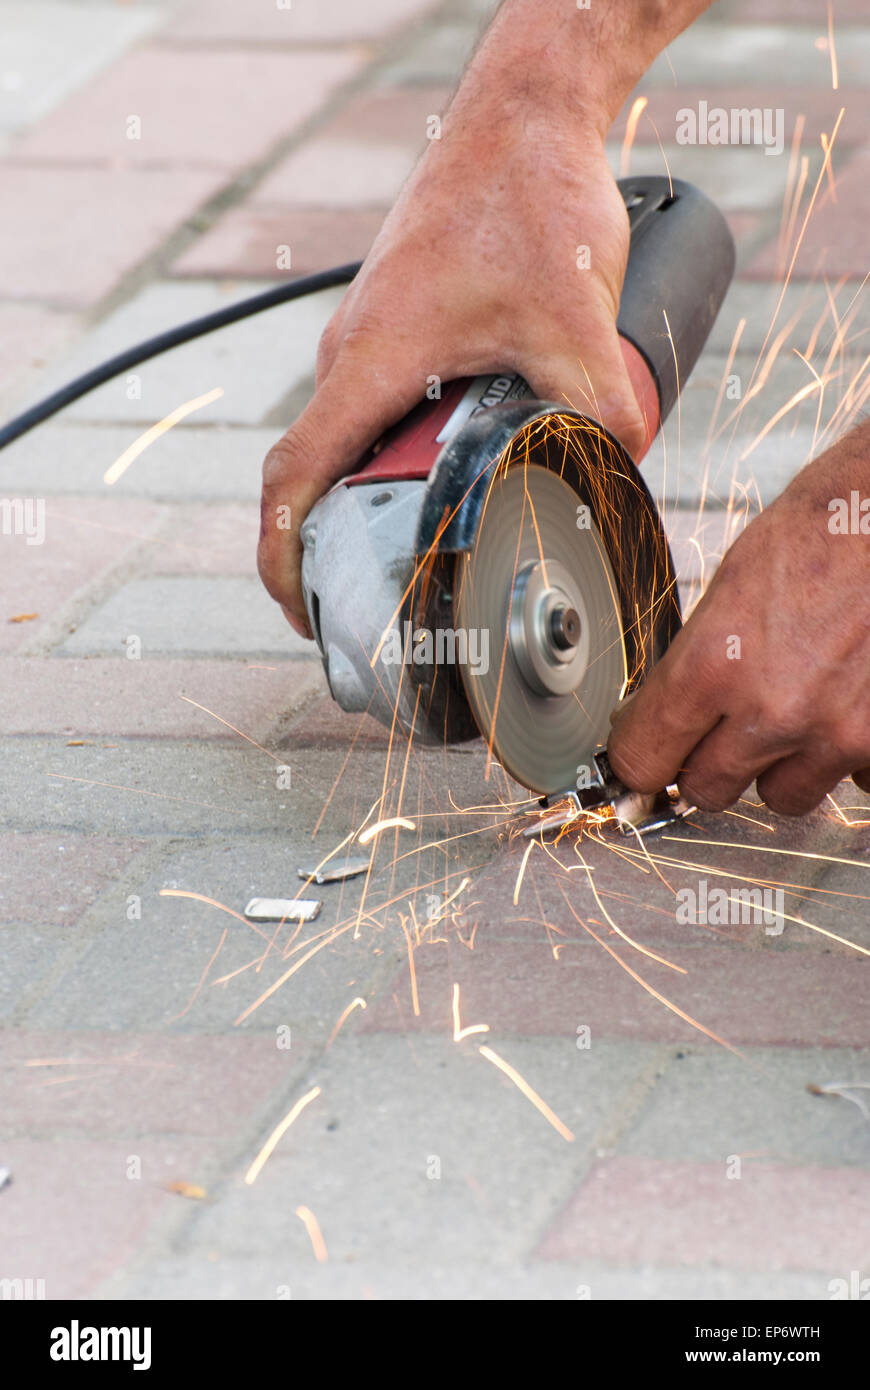 A man working by angle grinder - Stock Image